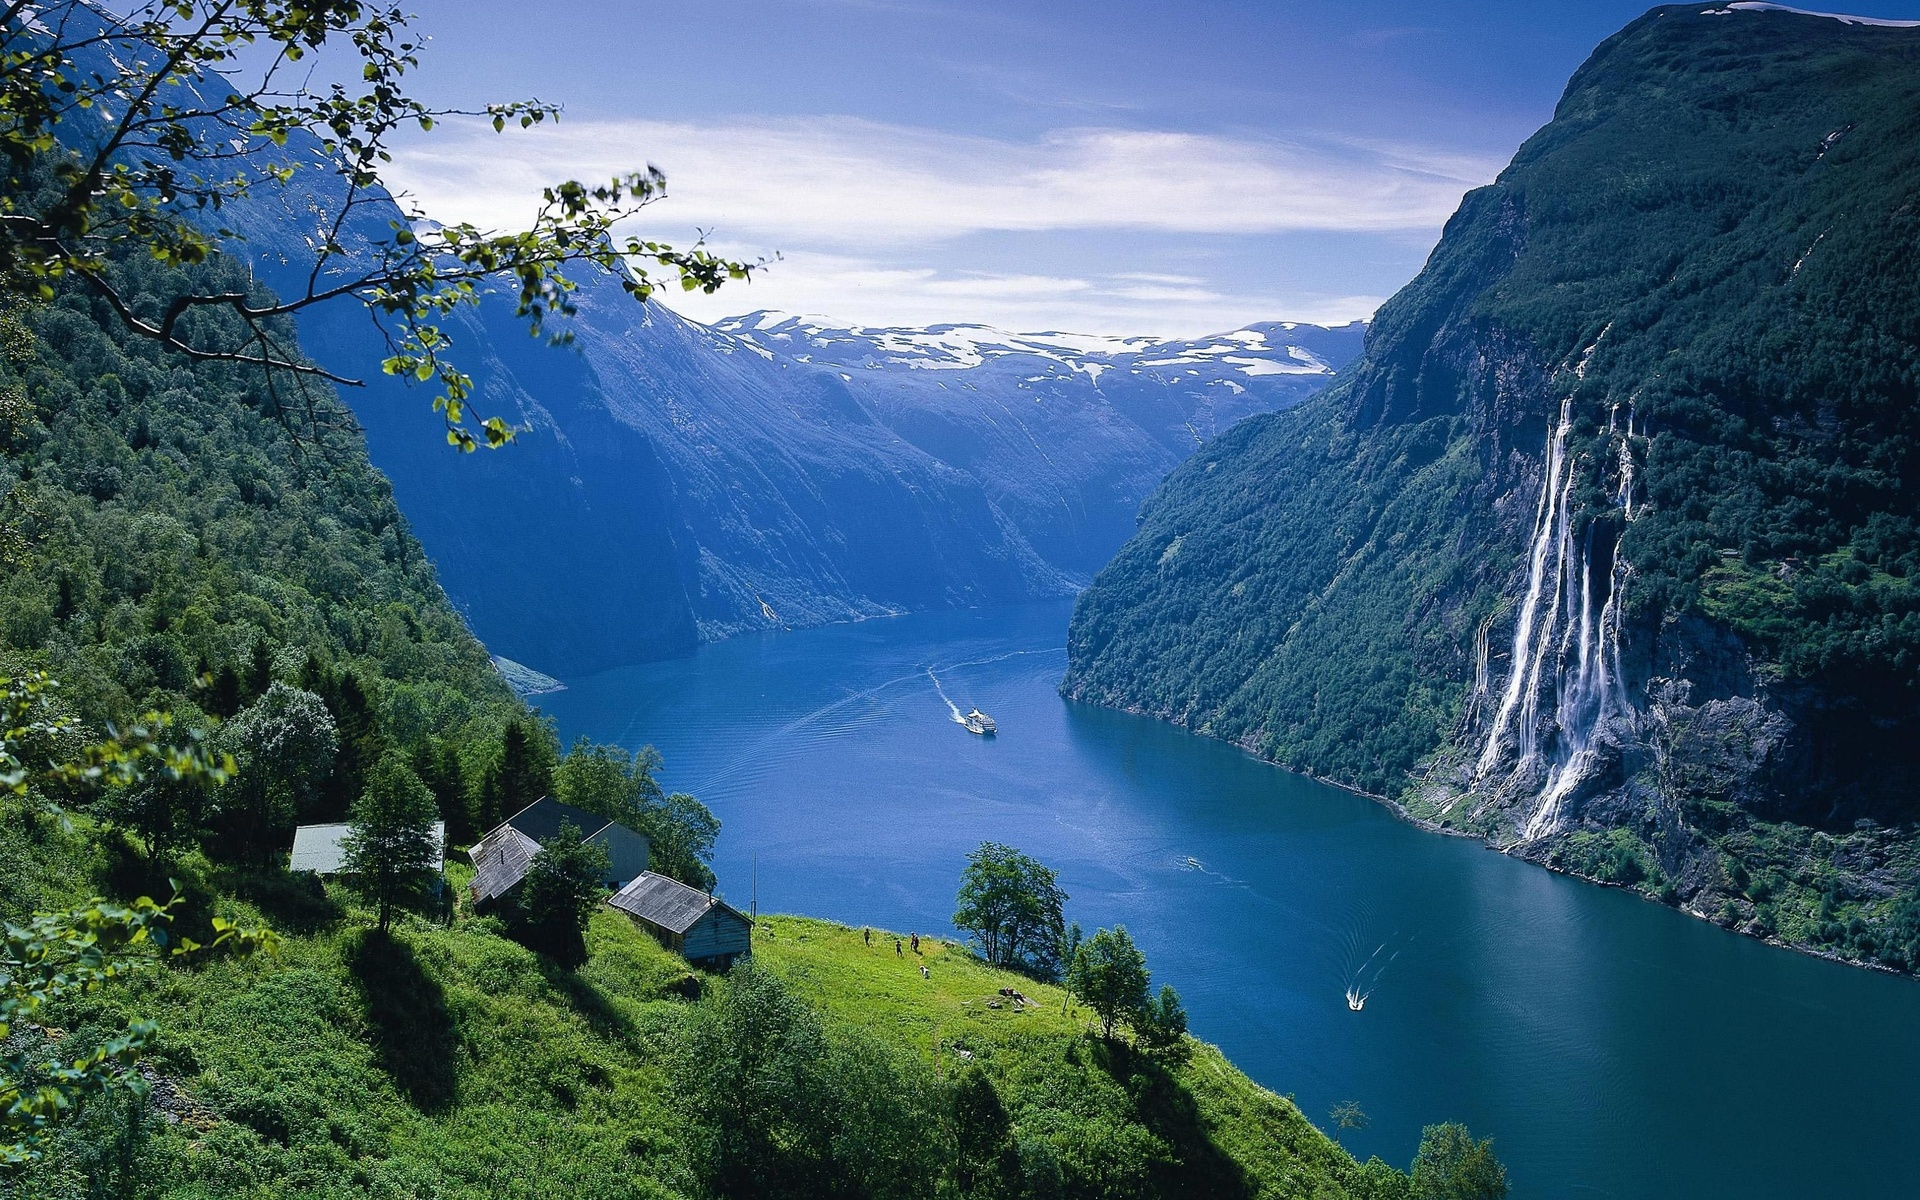 landscape fjord Norway water sea ocean buildings architecture houses mountains waterfall sky clouds trees